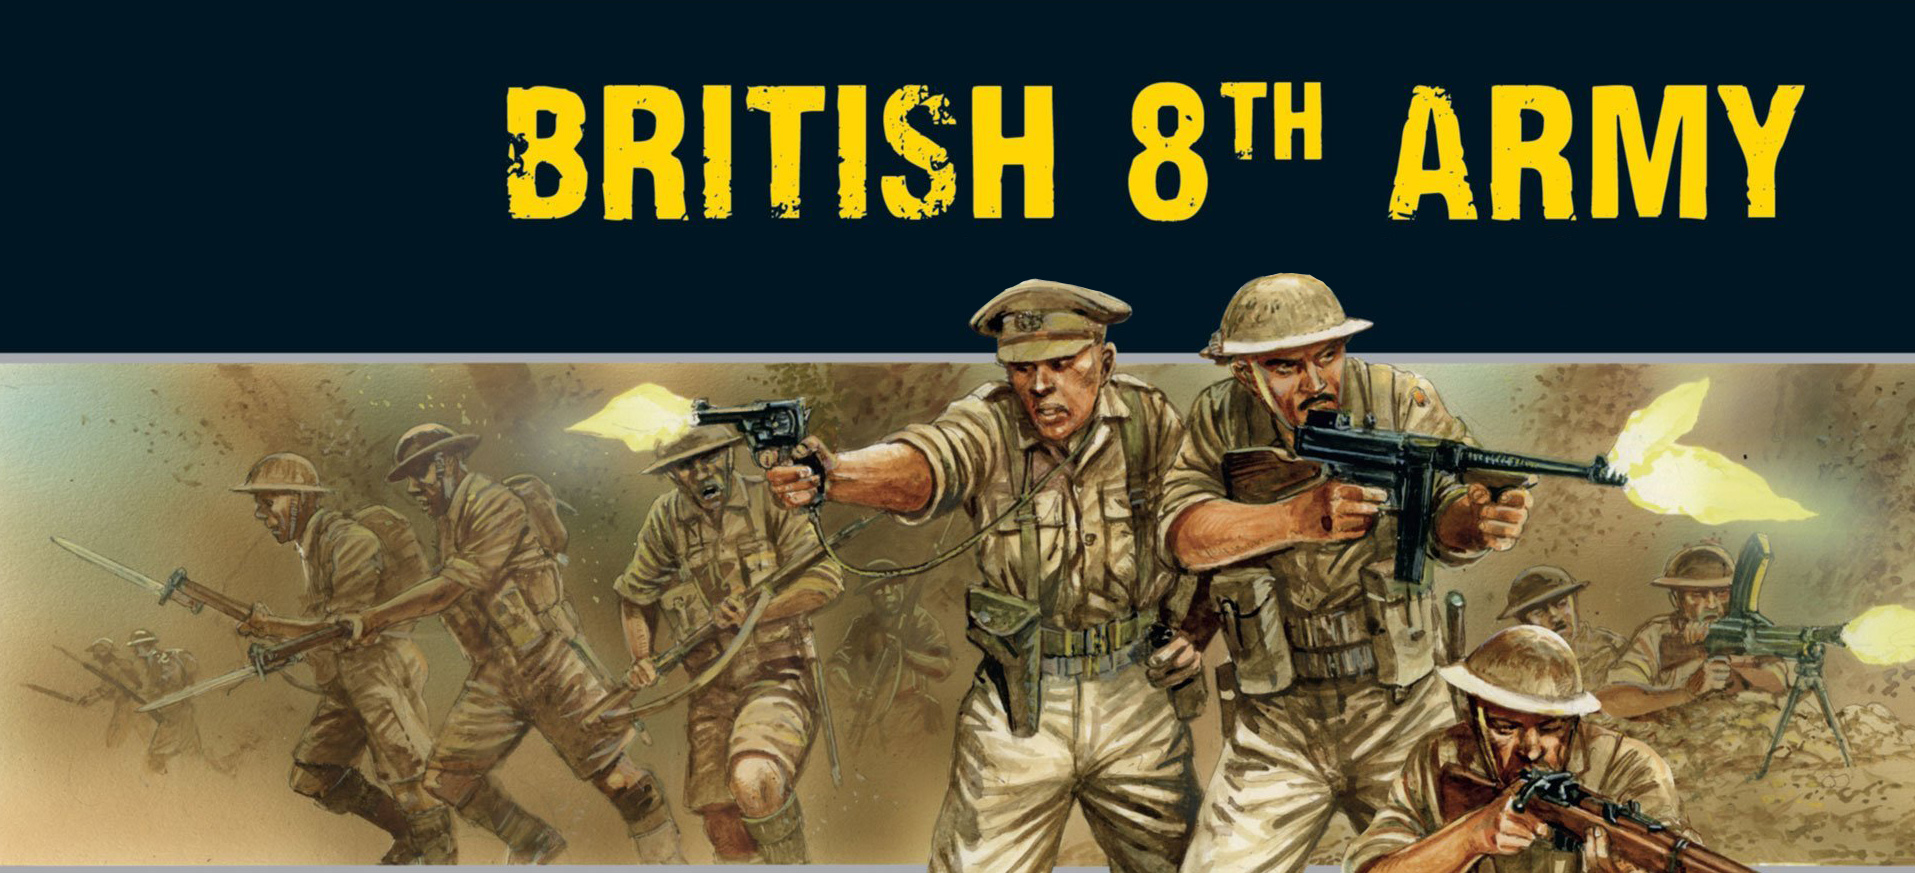 british-8th-army-header.jpg